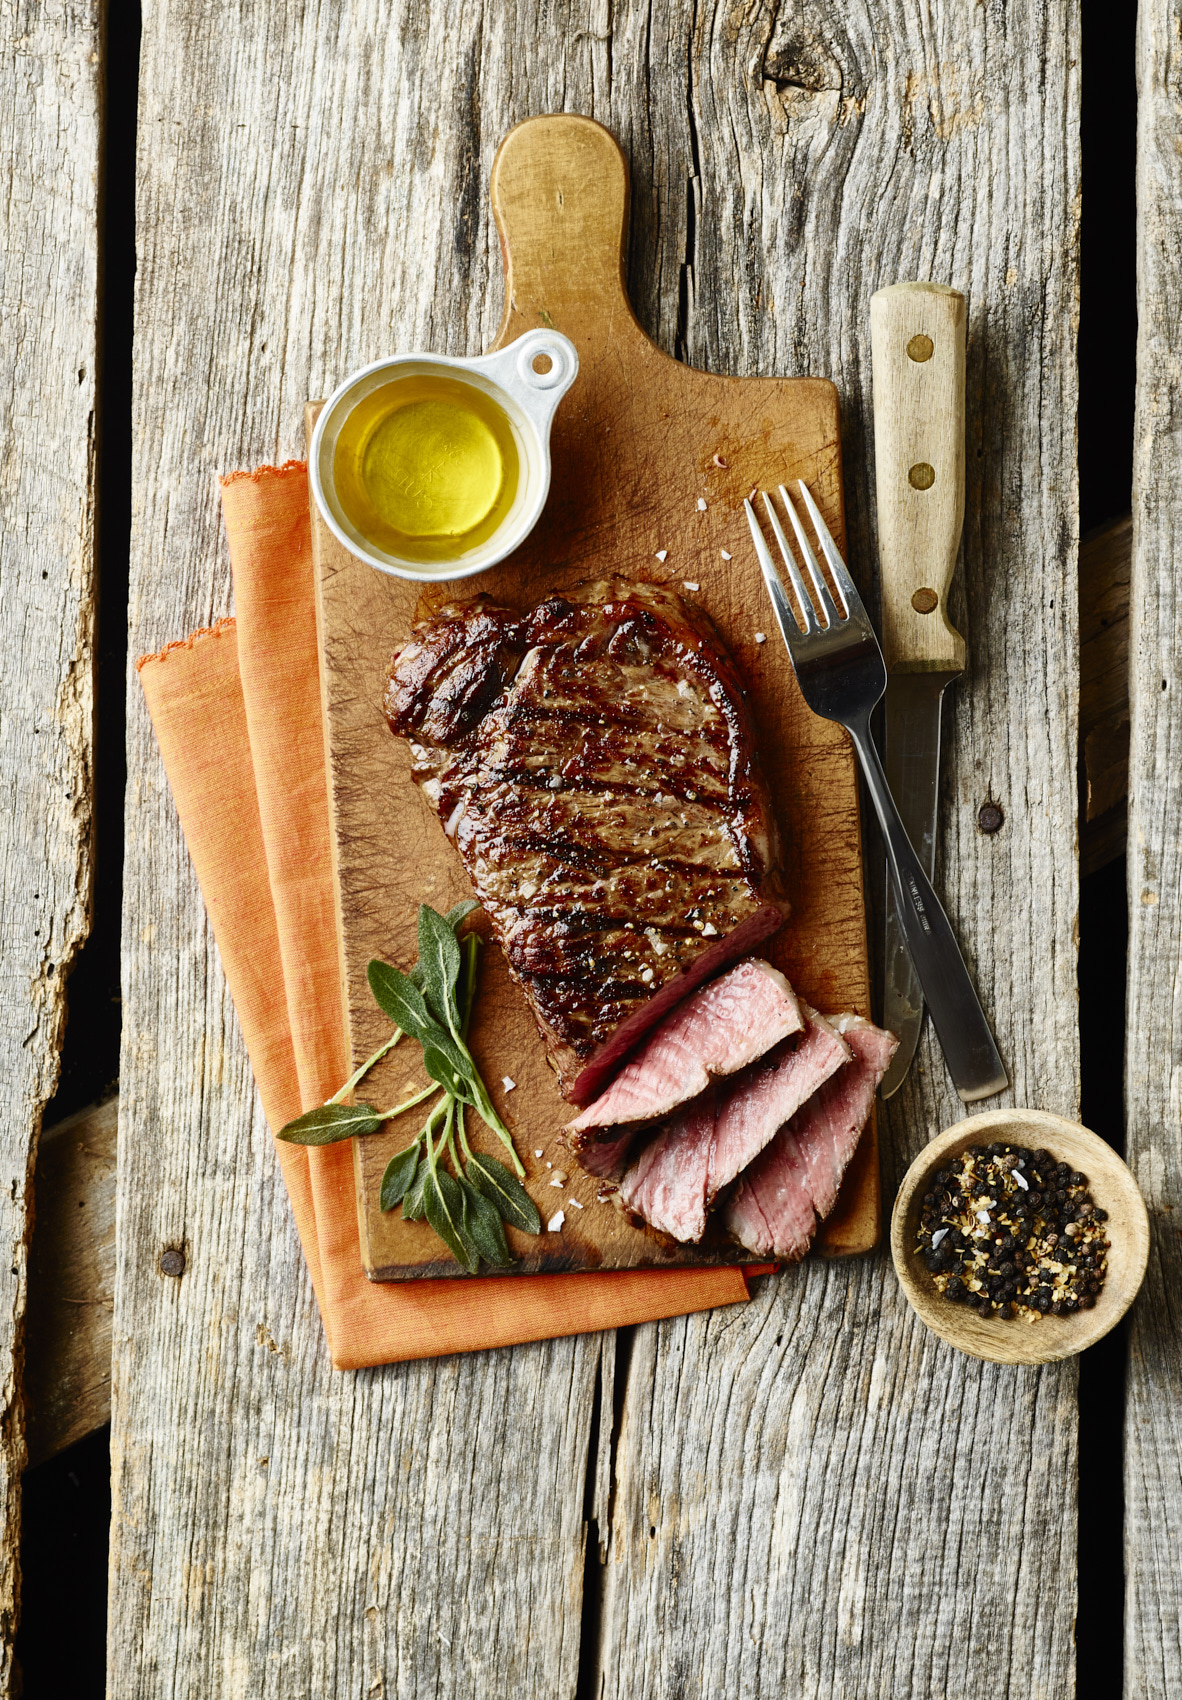 Publix_Greenwise_Angus_Beef20402